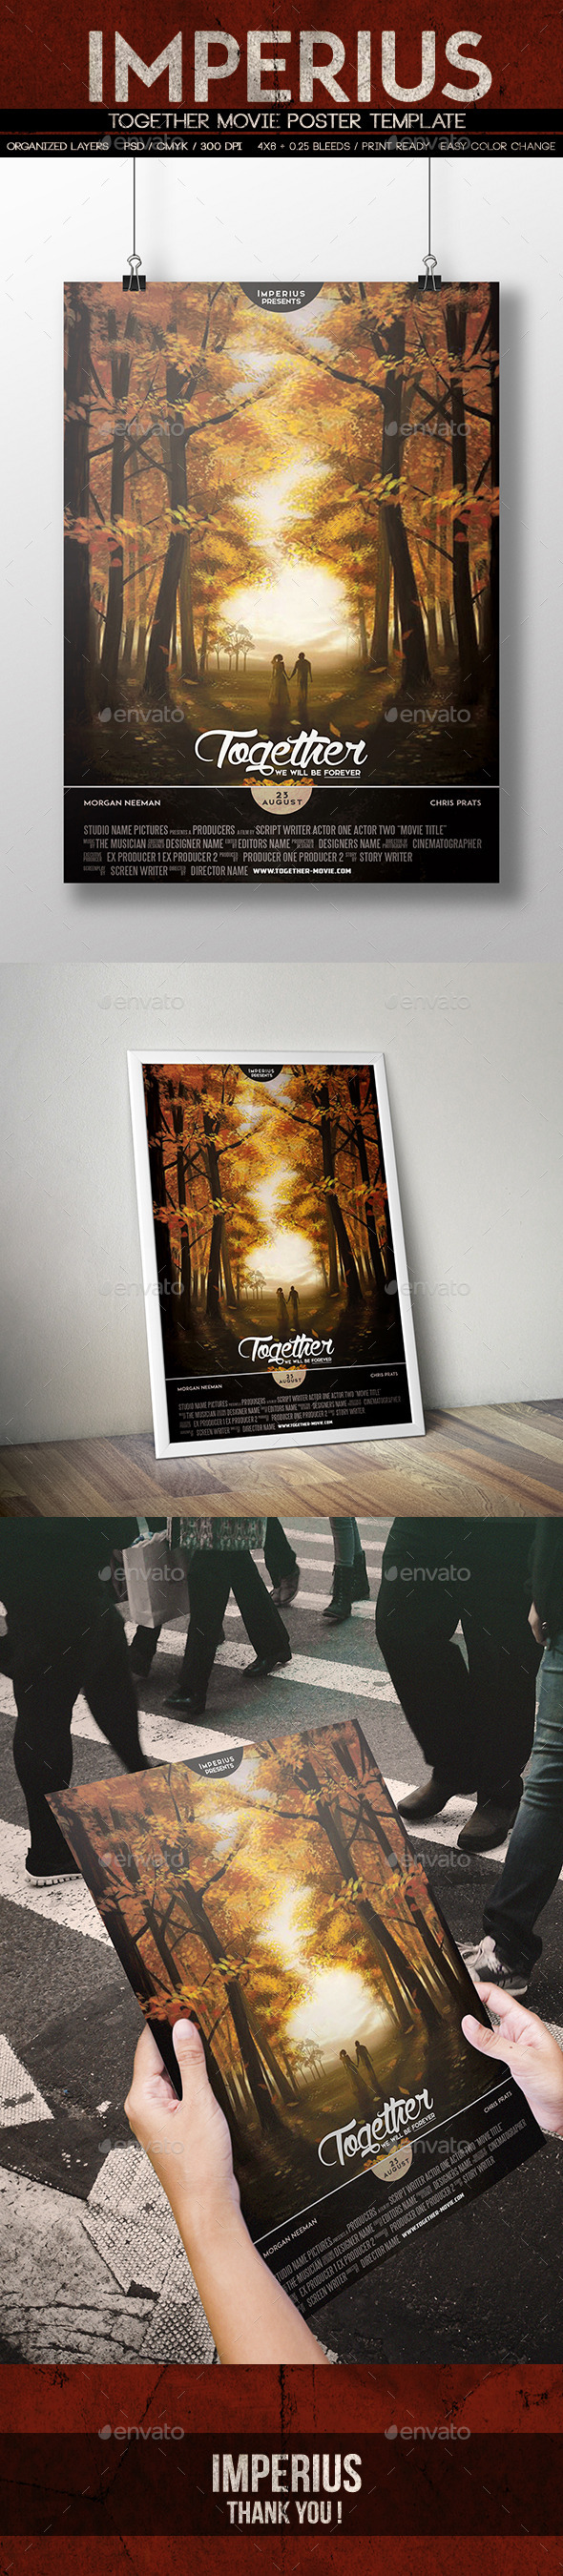 Font used in movie posters